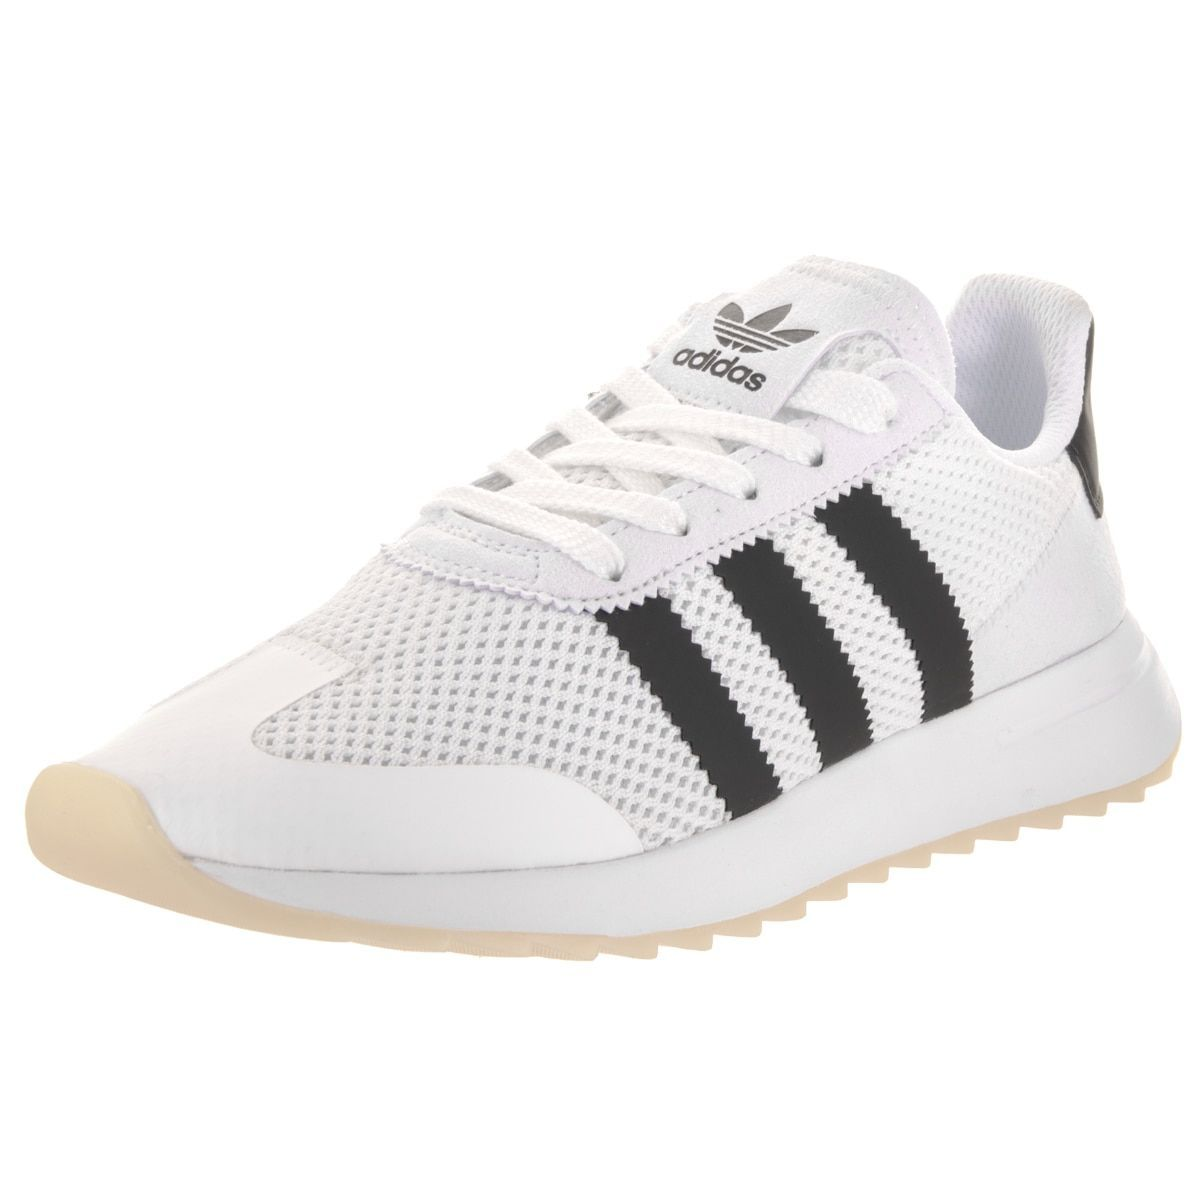 Womens Flashback Low-Top Sneakers, Ftwwht/Cblack/Ftwwht adidas